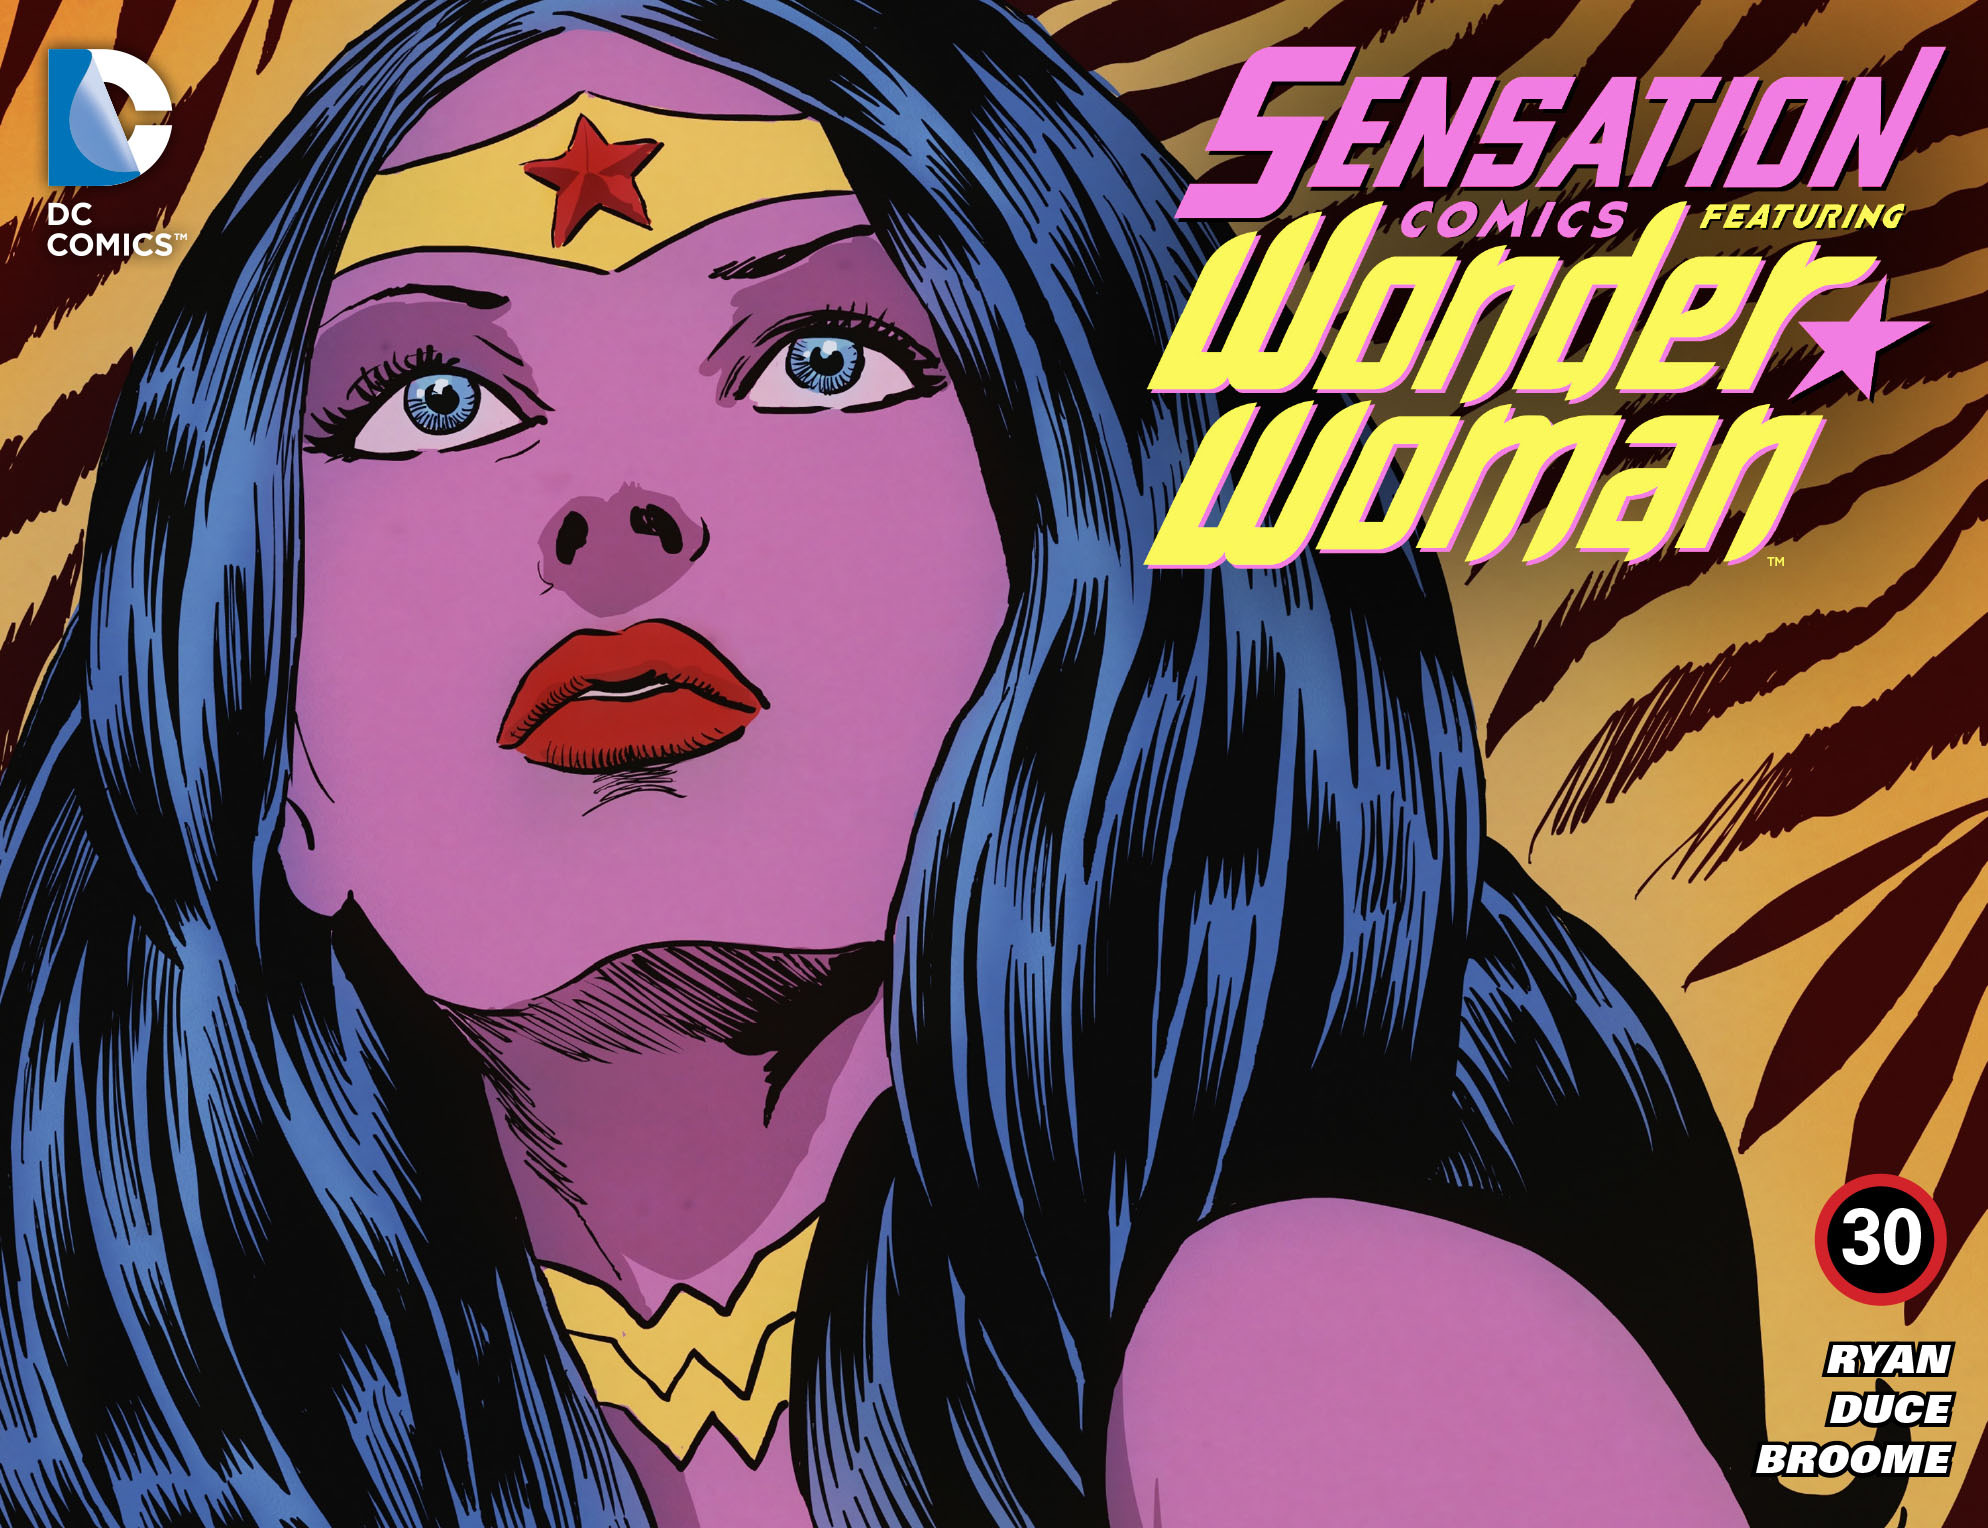 Read online Sensation Comics Featuring Wonder Woman comic -  Issue #30 - 1